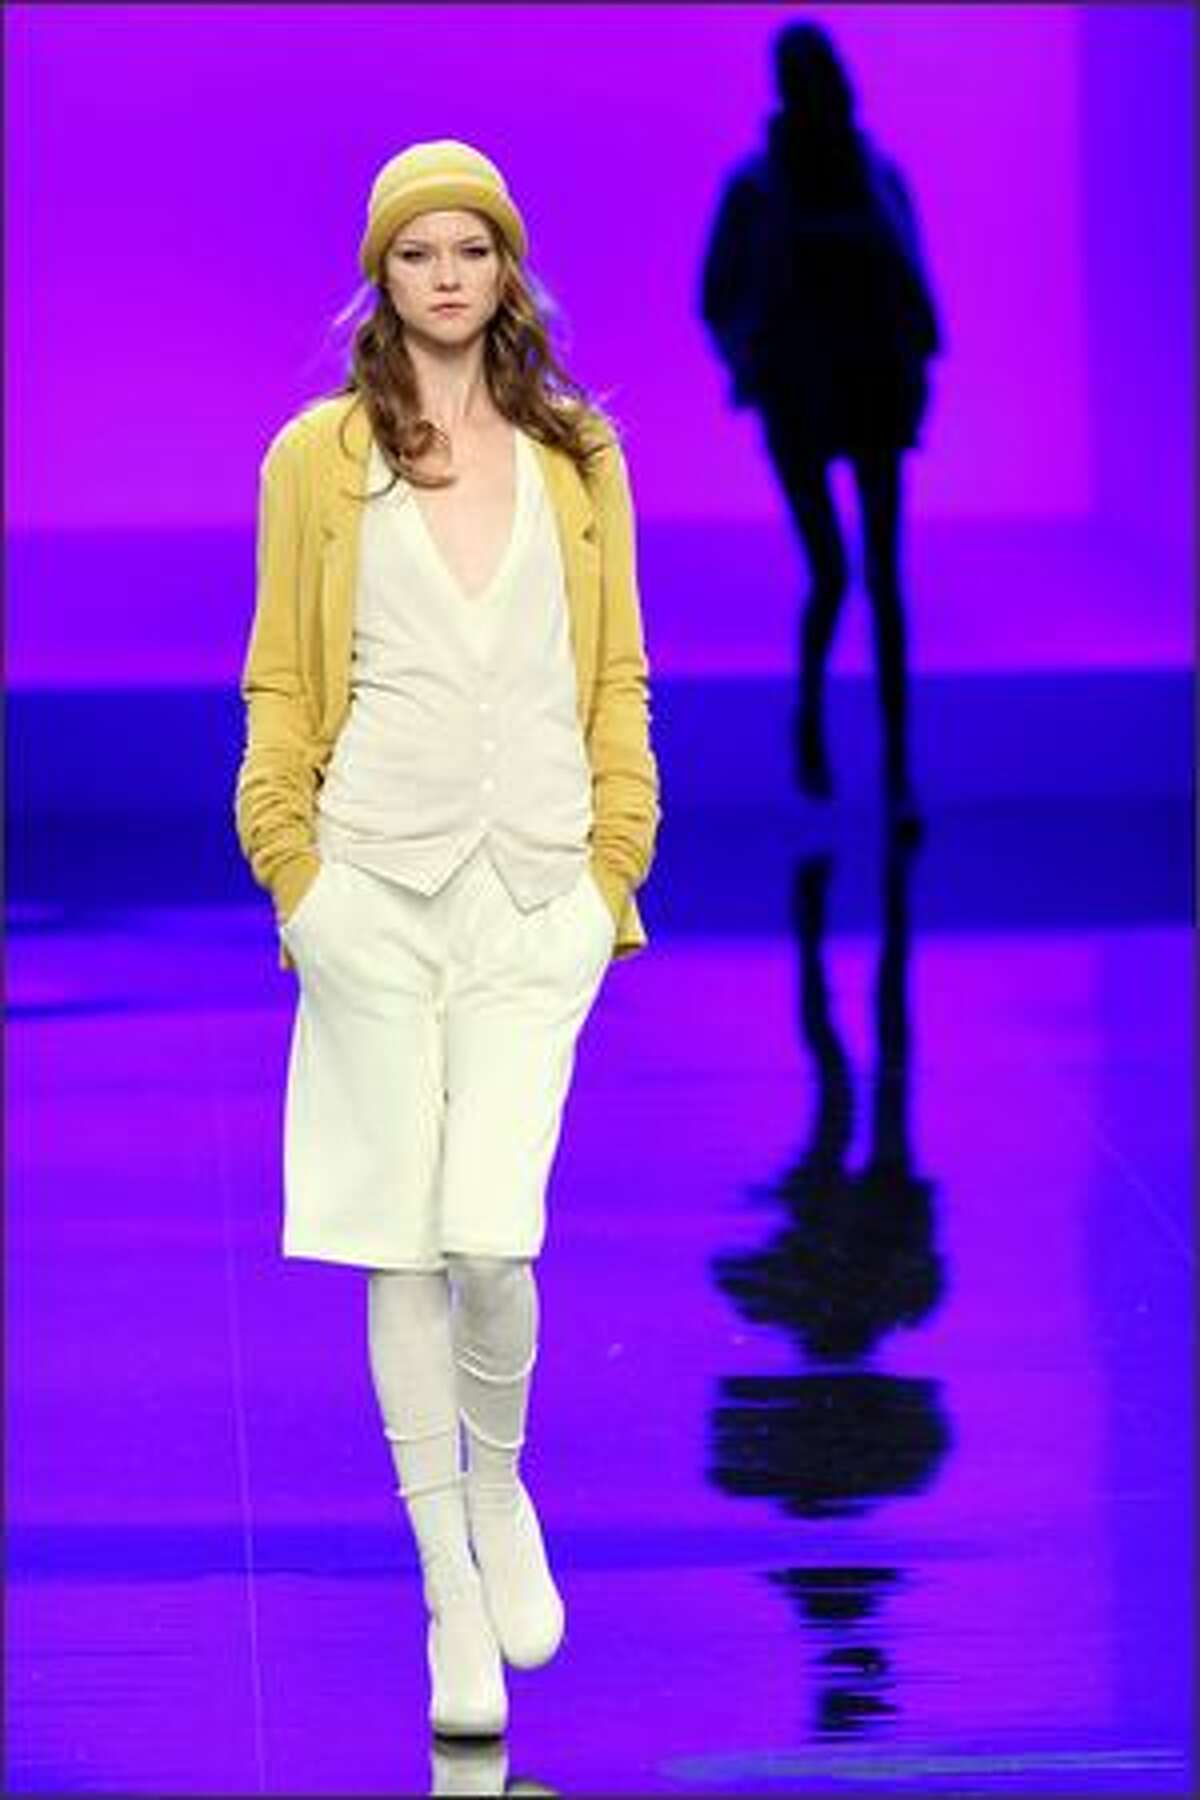 A model walks the runway at the Lacoste fashion show.